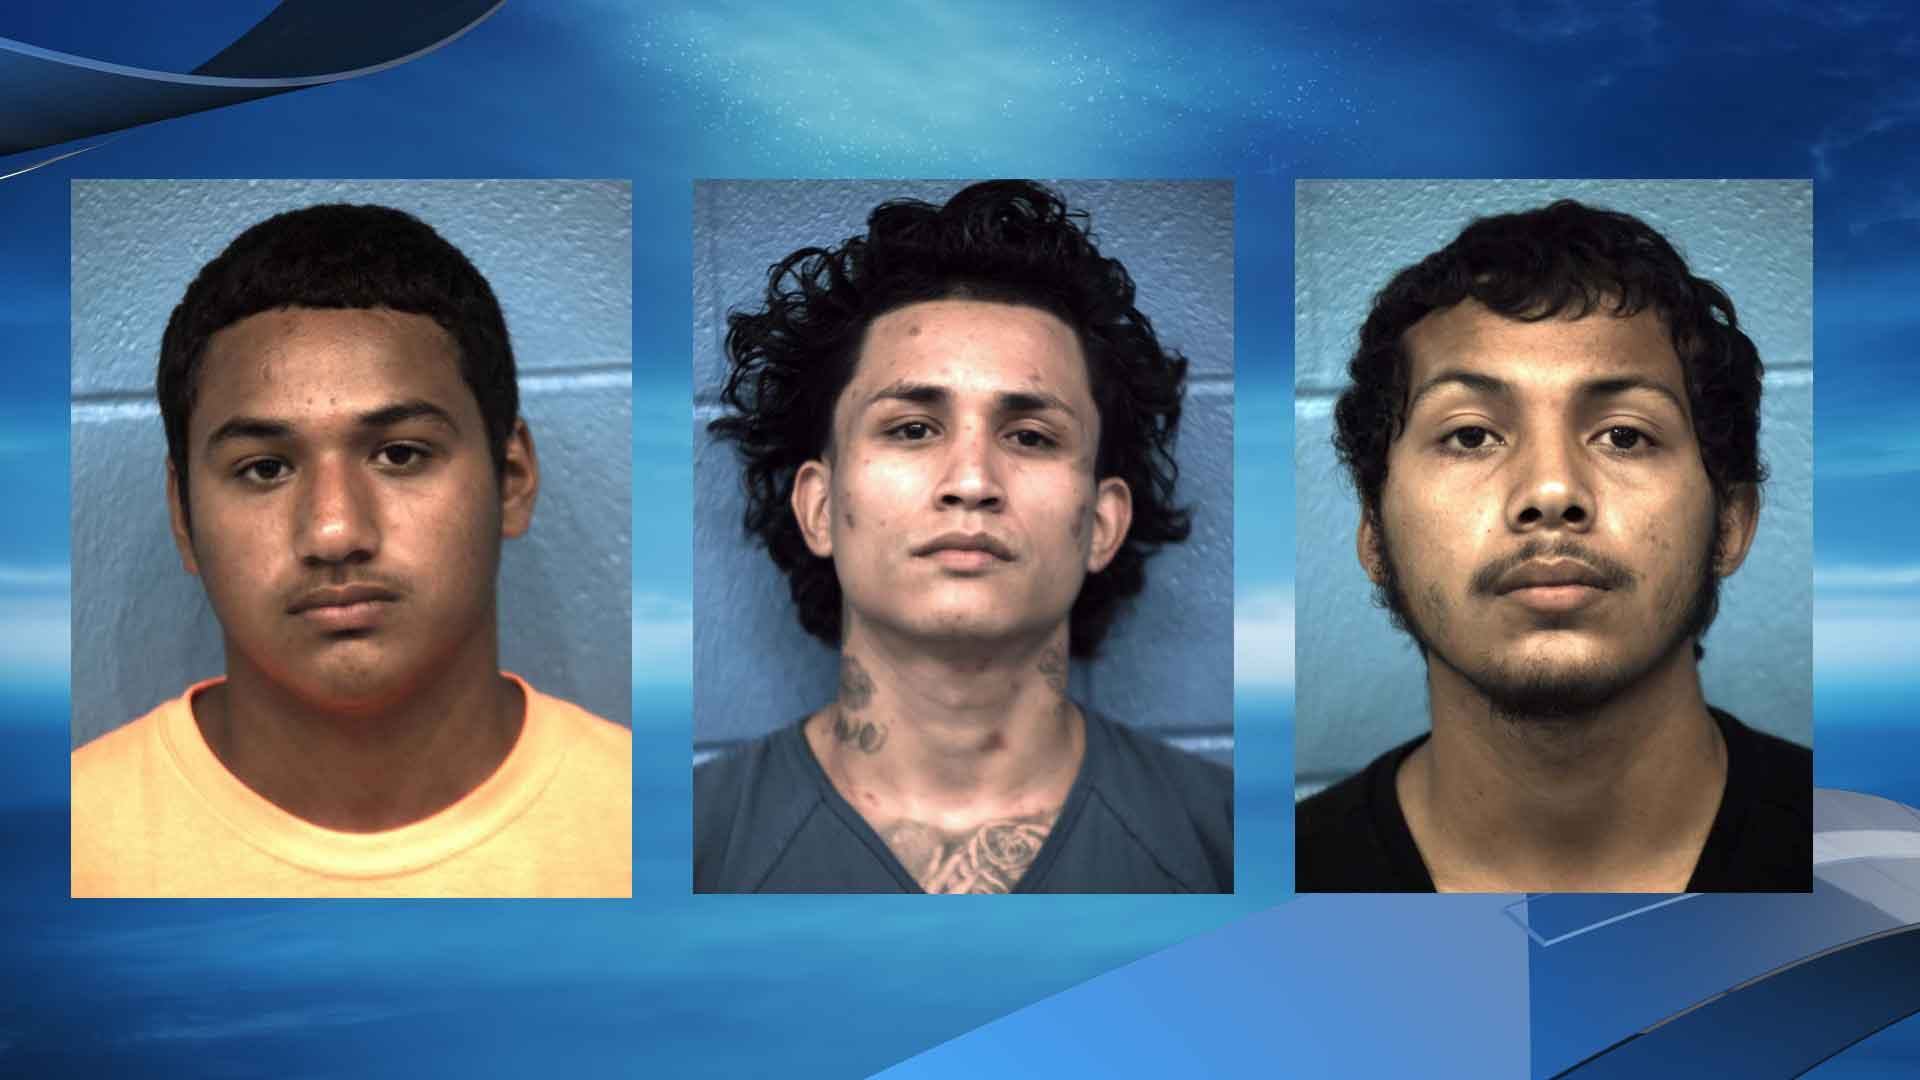 Javier Vences, 17, Flavio Castelan, 26, Miguel Vences, 18, and the juvenile are now facing the charge of burglary f a habitation, a second degree felony. (Photos courtesy: Williamson County Sheriff's Office)